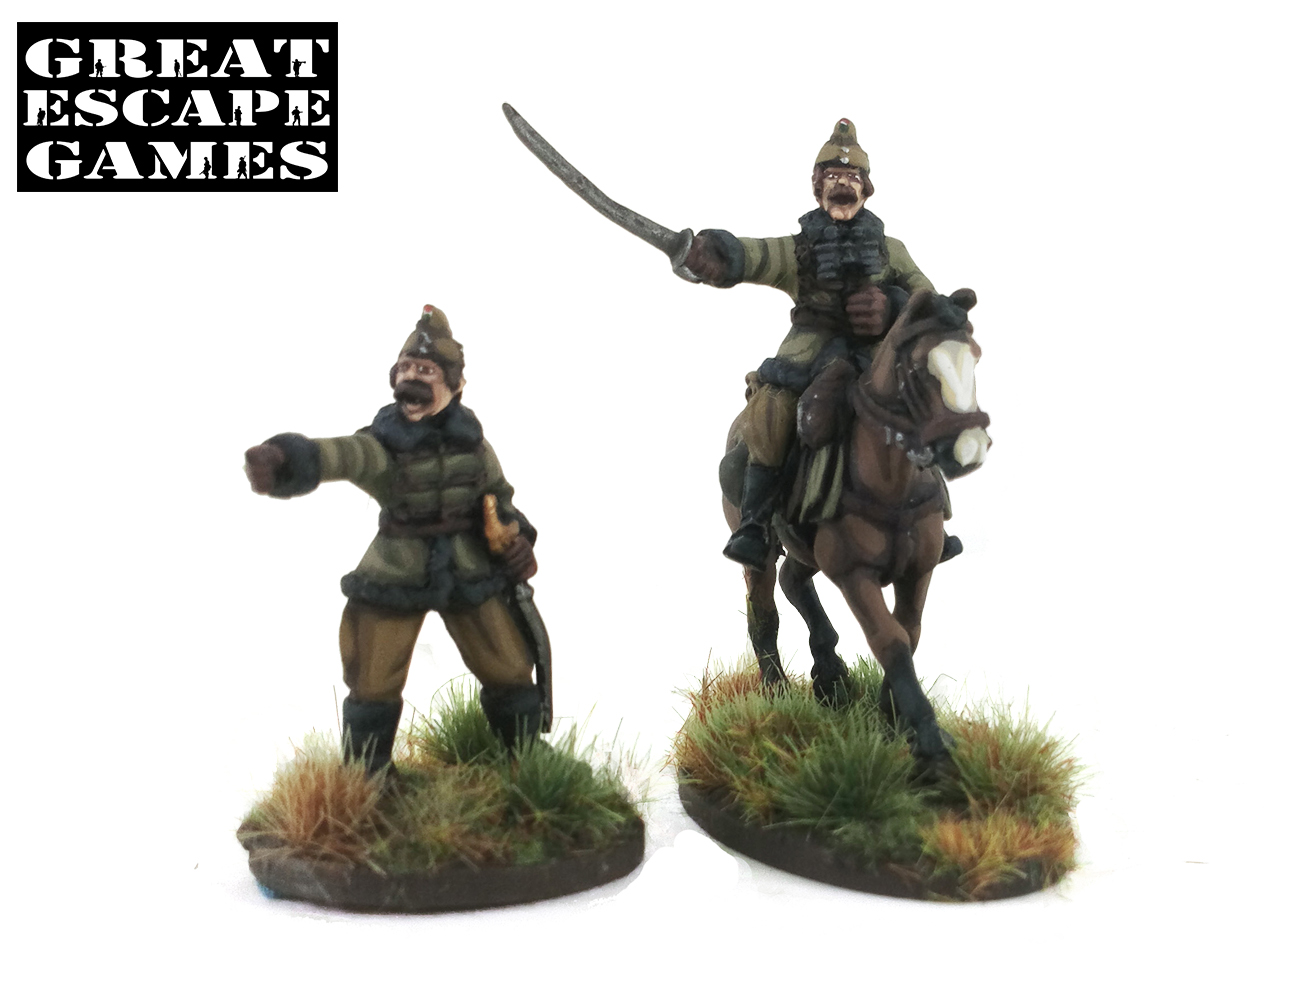 Pledge #4 Százados (Captain) - Hungarian Mounted plus Dismounted Huszár Troop (Great Escape Games) HUN254